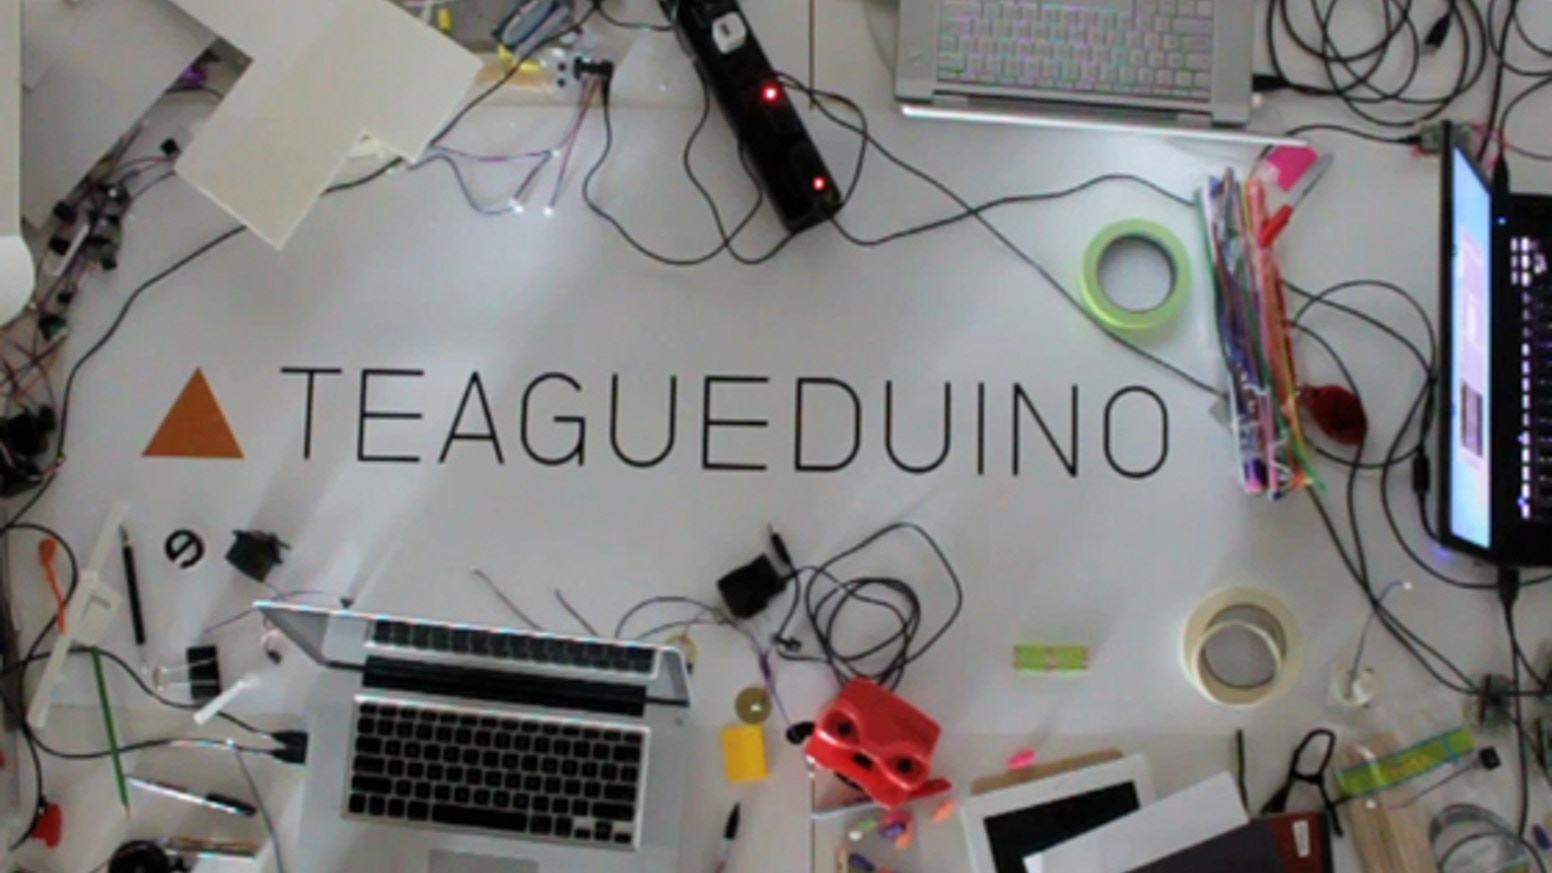 Teagueduino: Learn to Make by Teague — Kickstarter